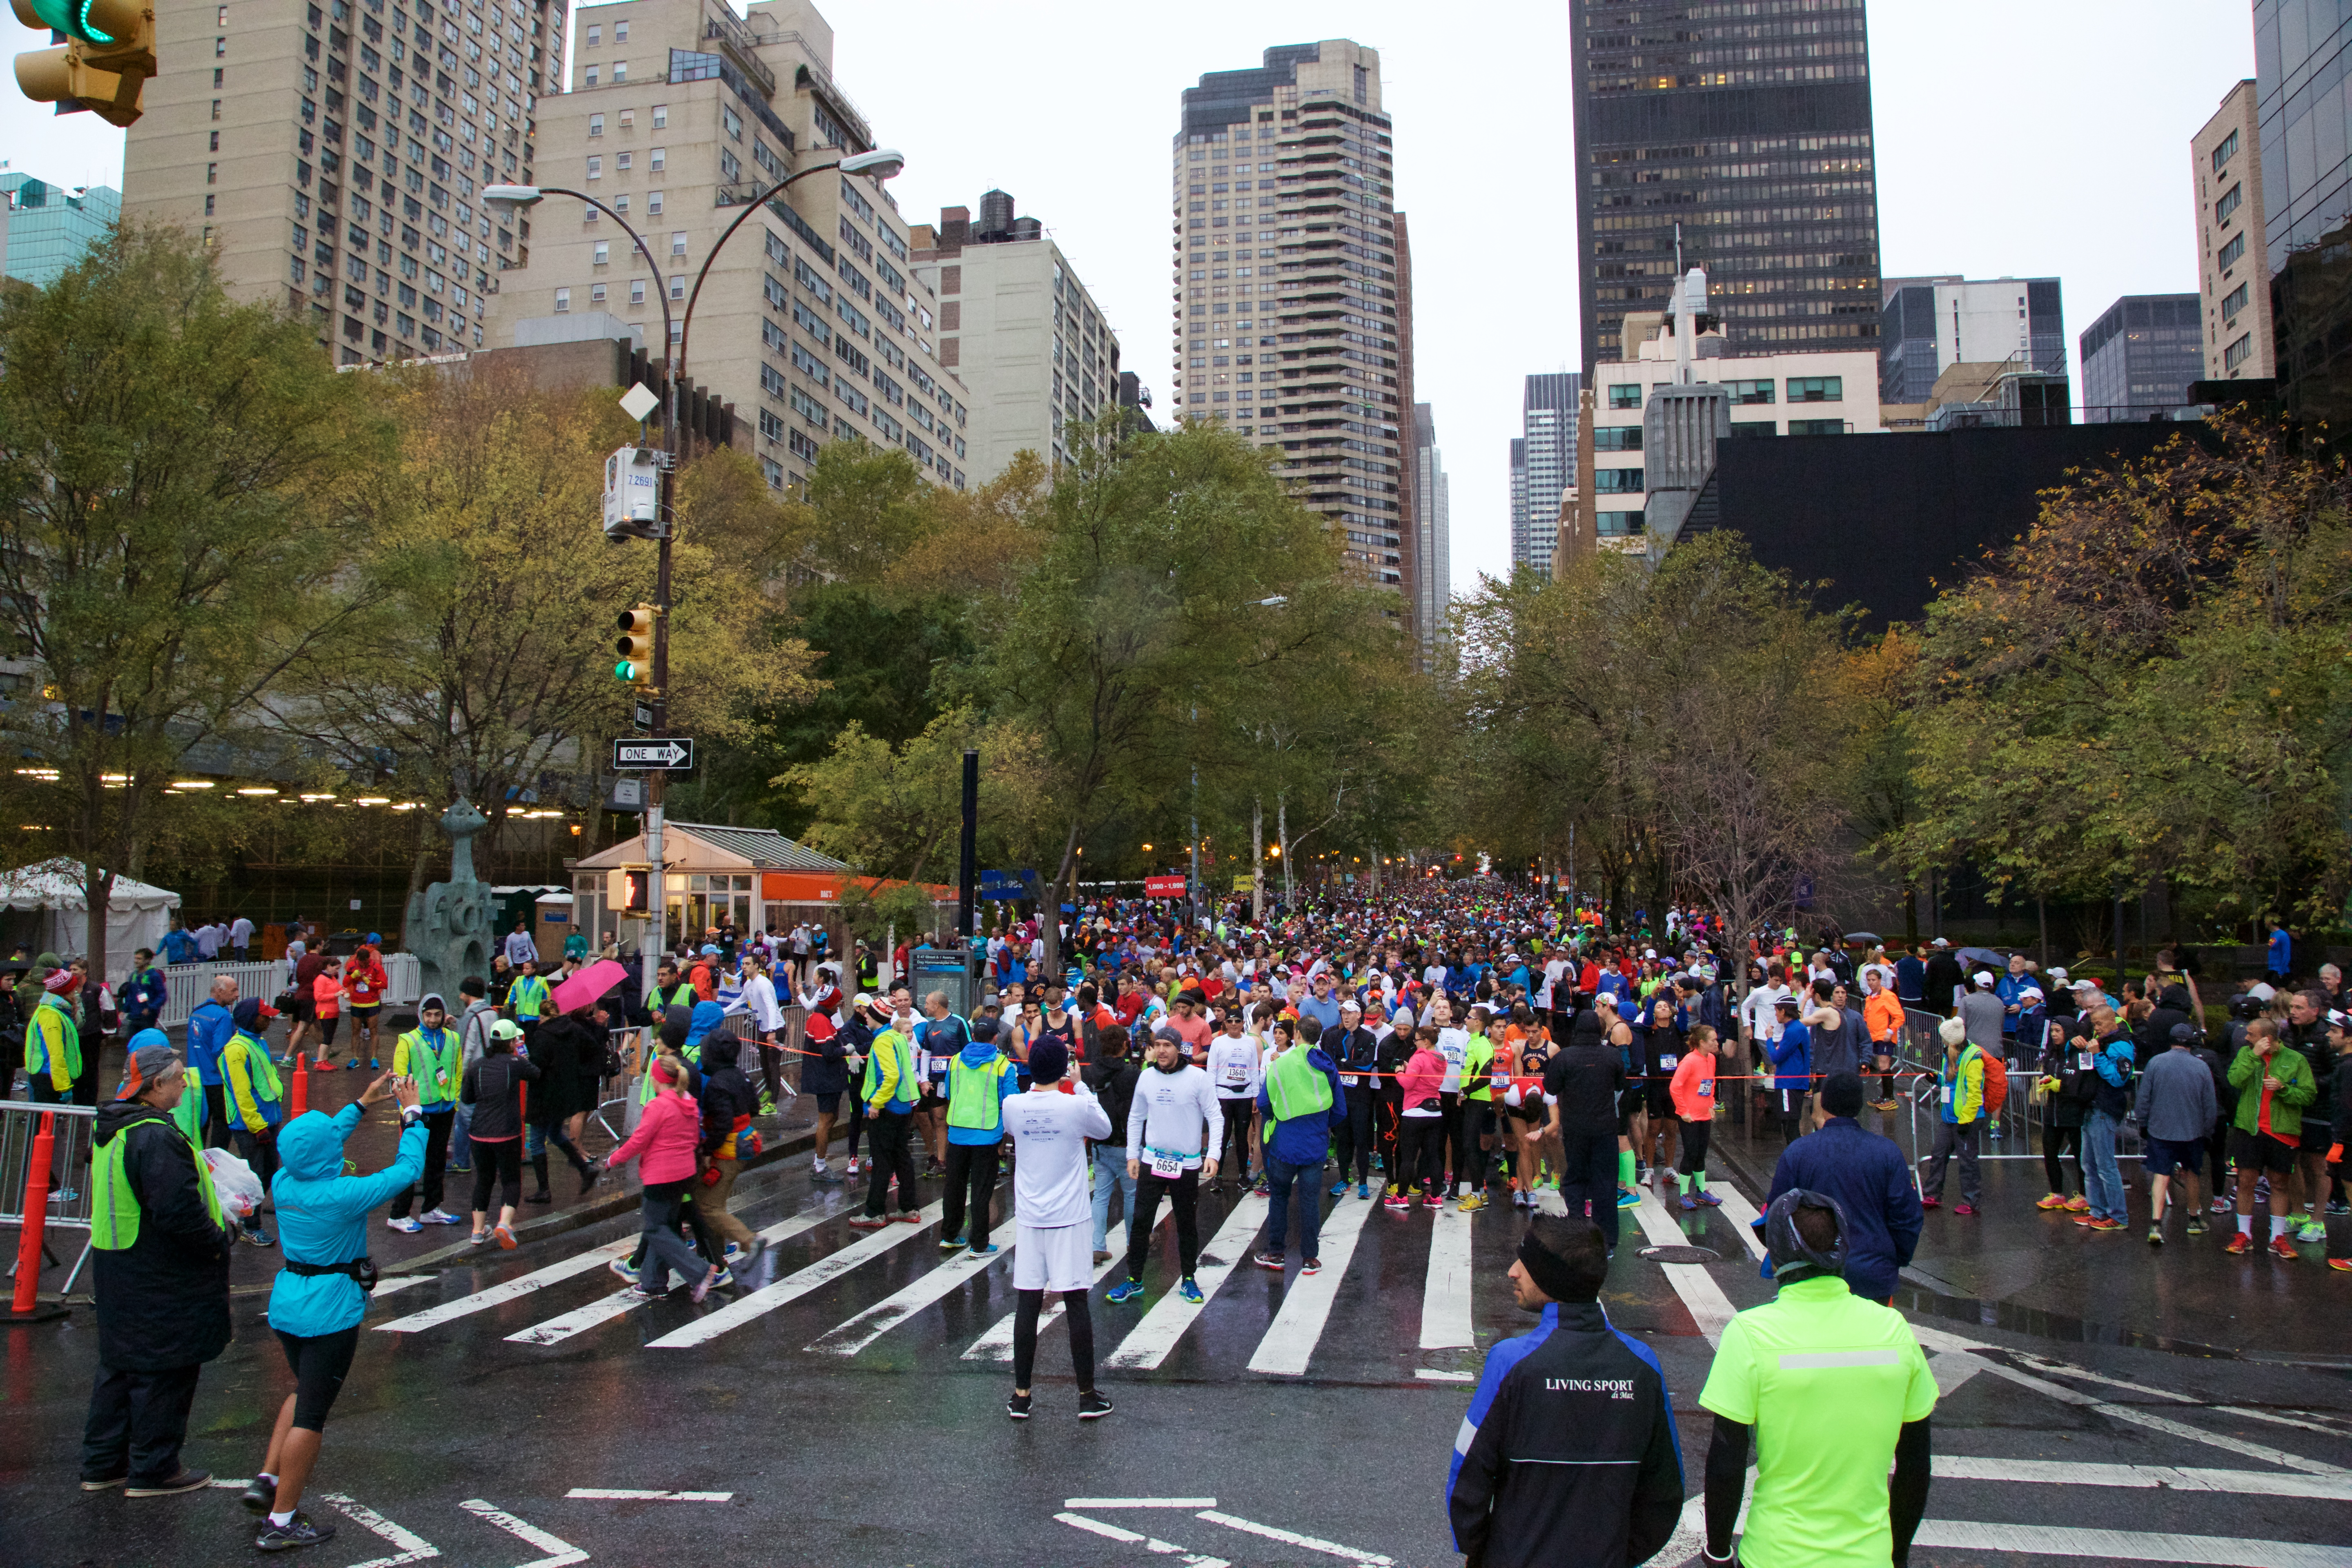 Picture of the crowd at the NYRR event